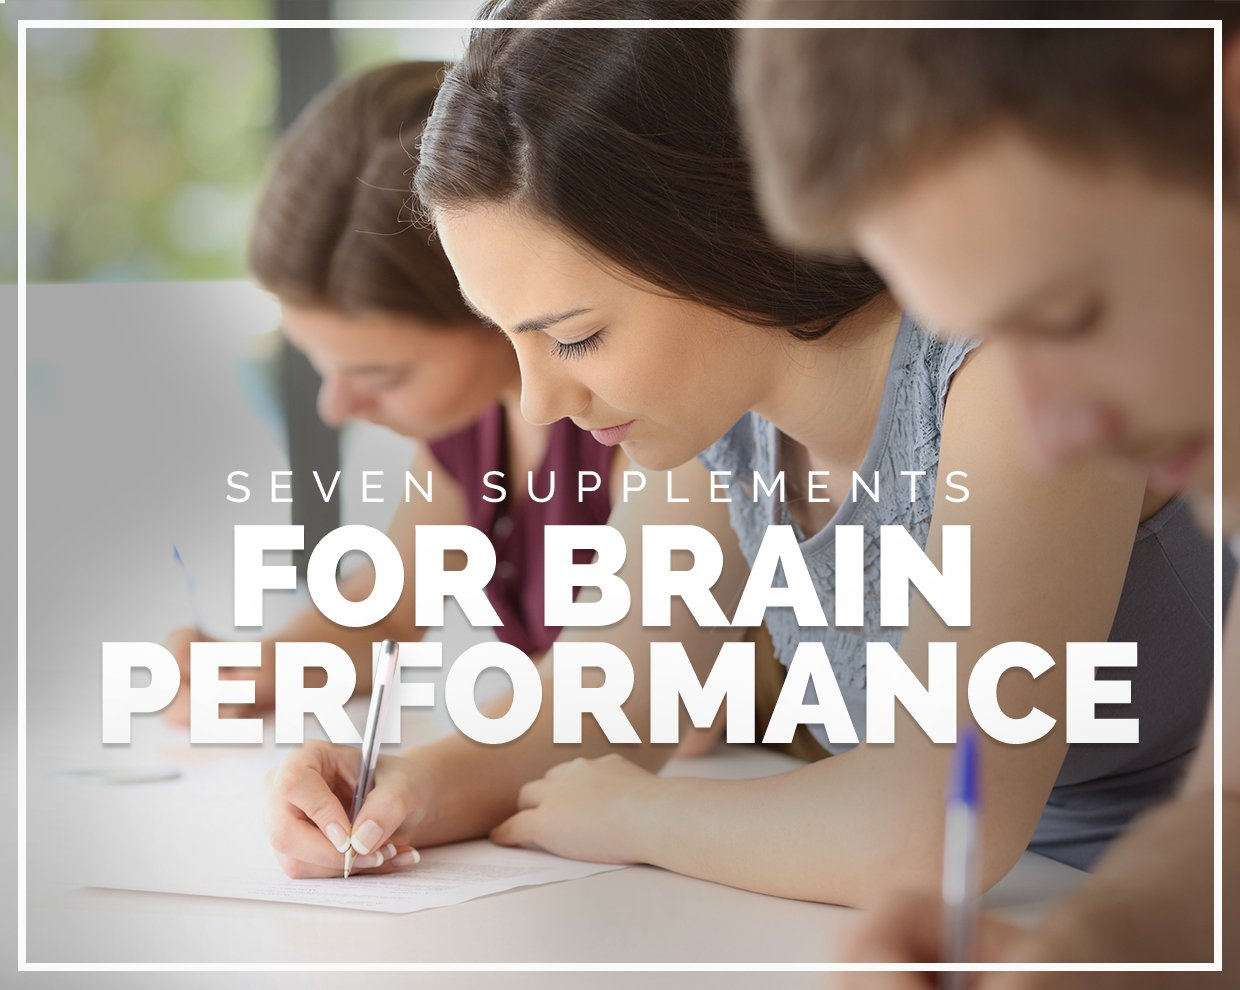 Seven supplements for brain performance